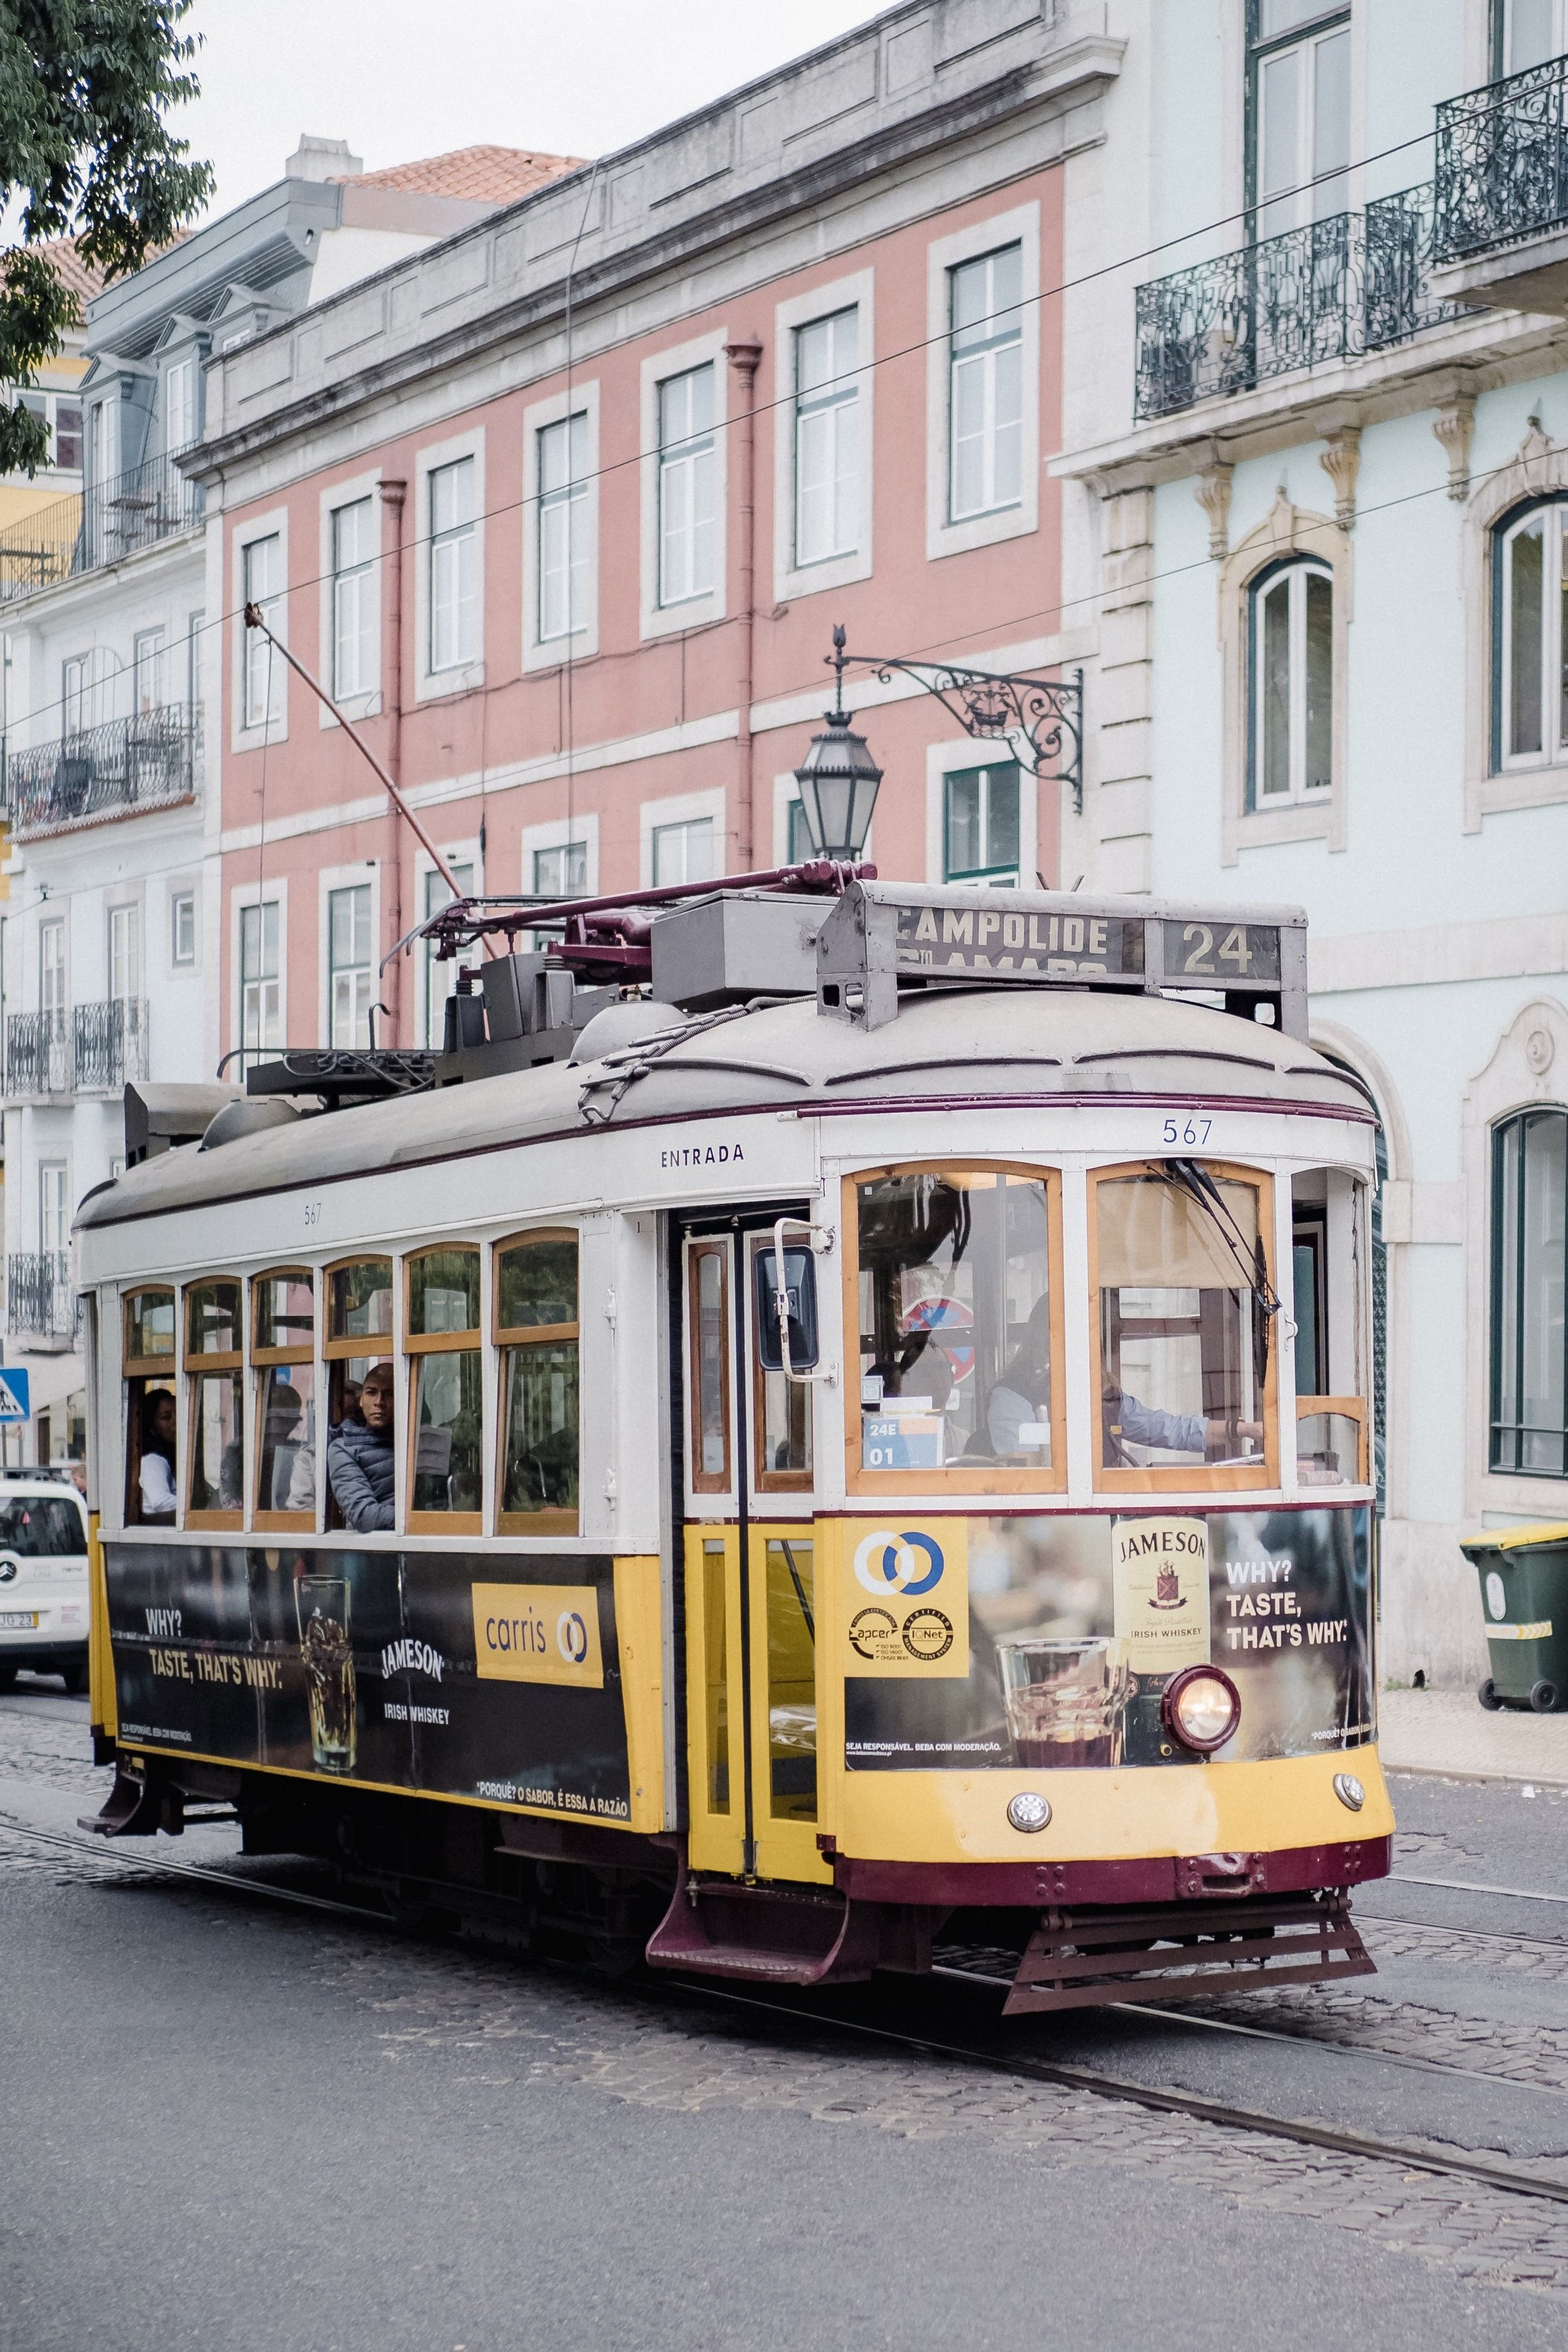 Lisbon's number 24 tram (not quite as famous as the 28, but you take what you can get sometimes).